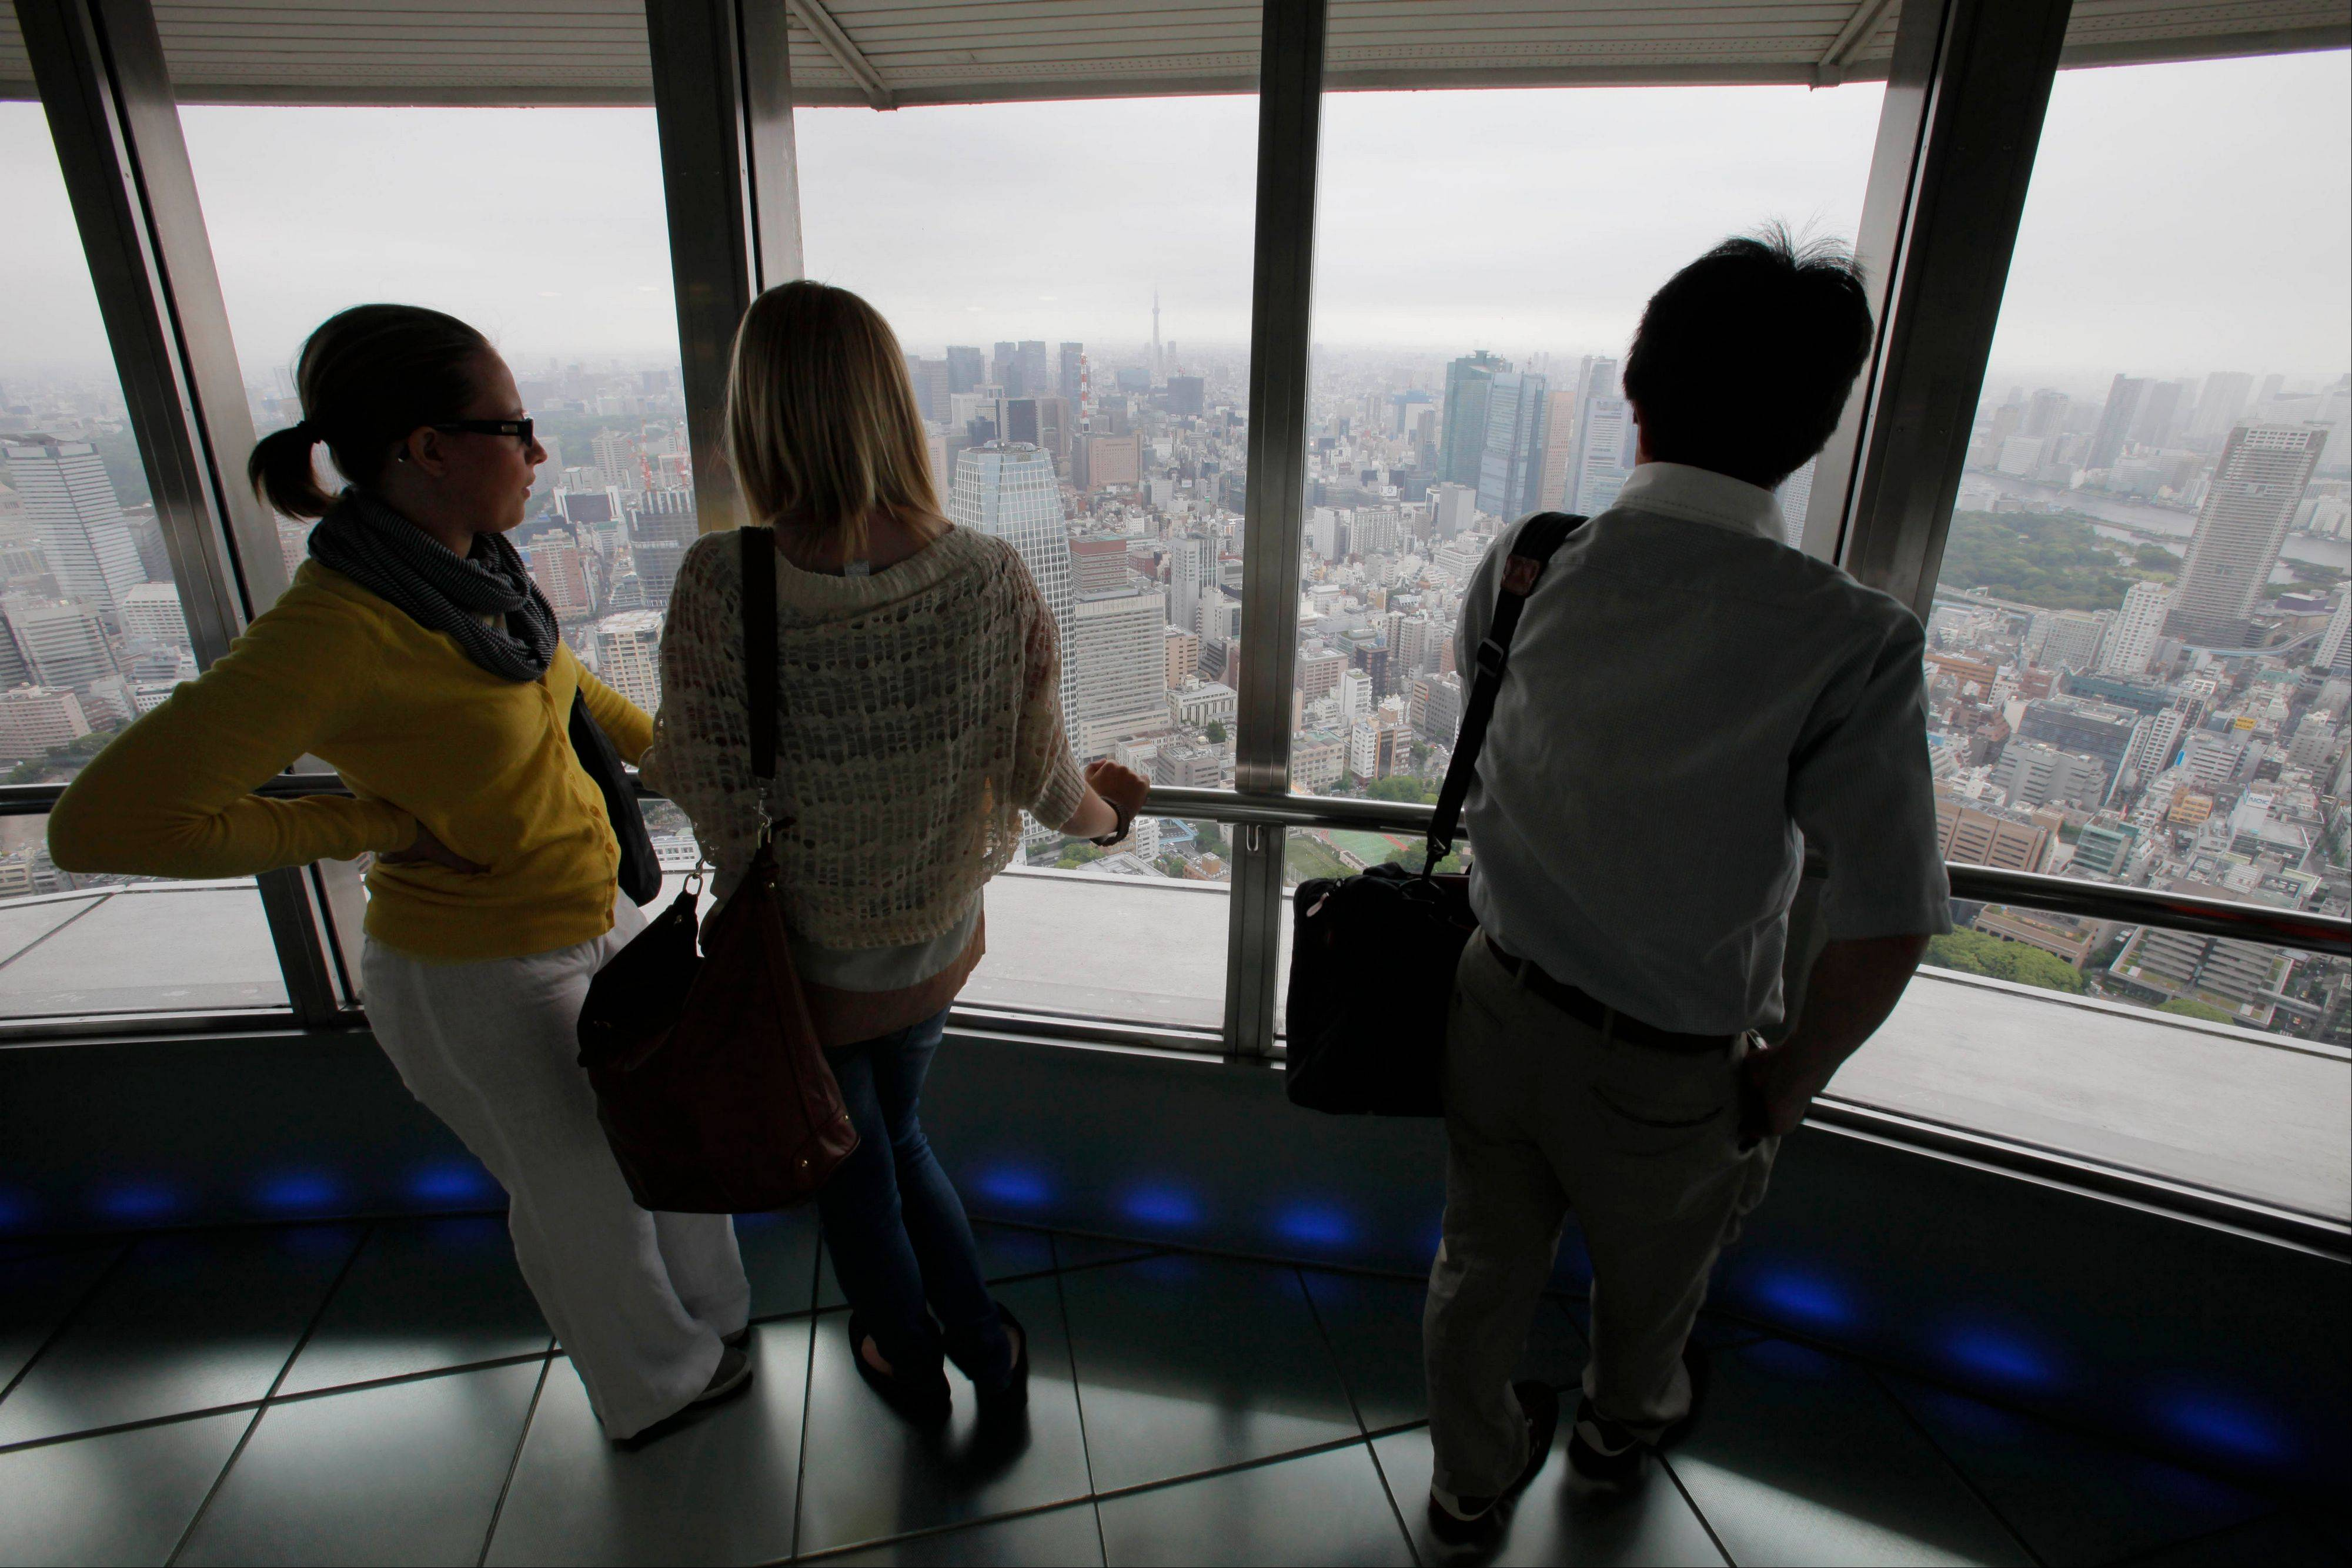 Visitors on the observation deck of Tokyo Tower in Japan. The Tokyo tourist experience is more affordable than the perception of an expensive city might suggest.